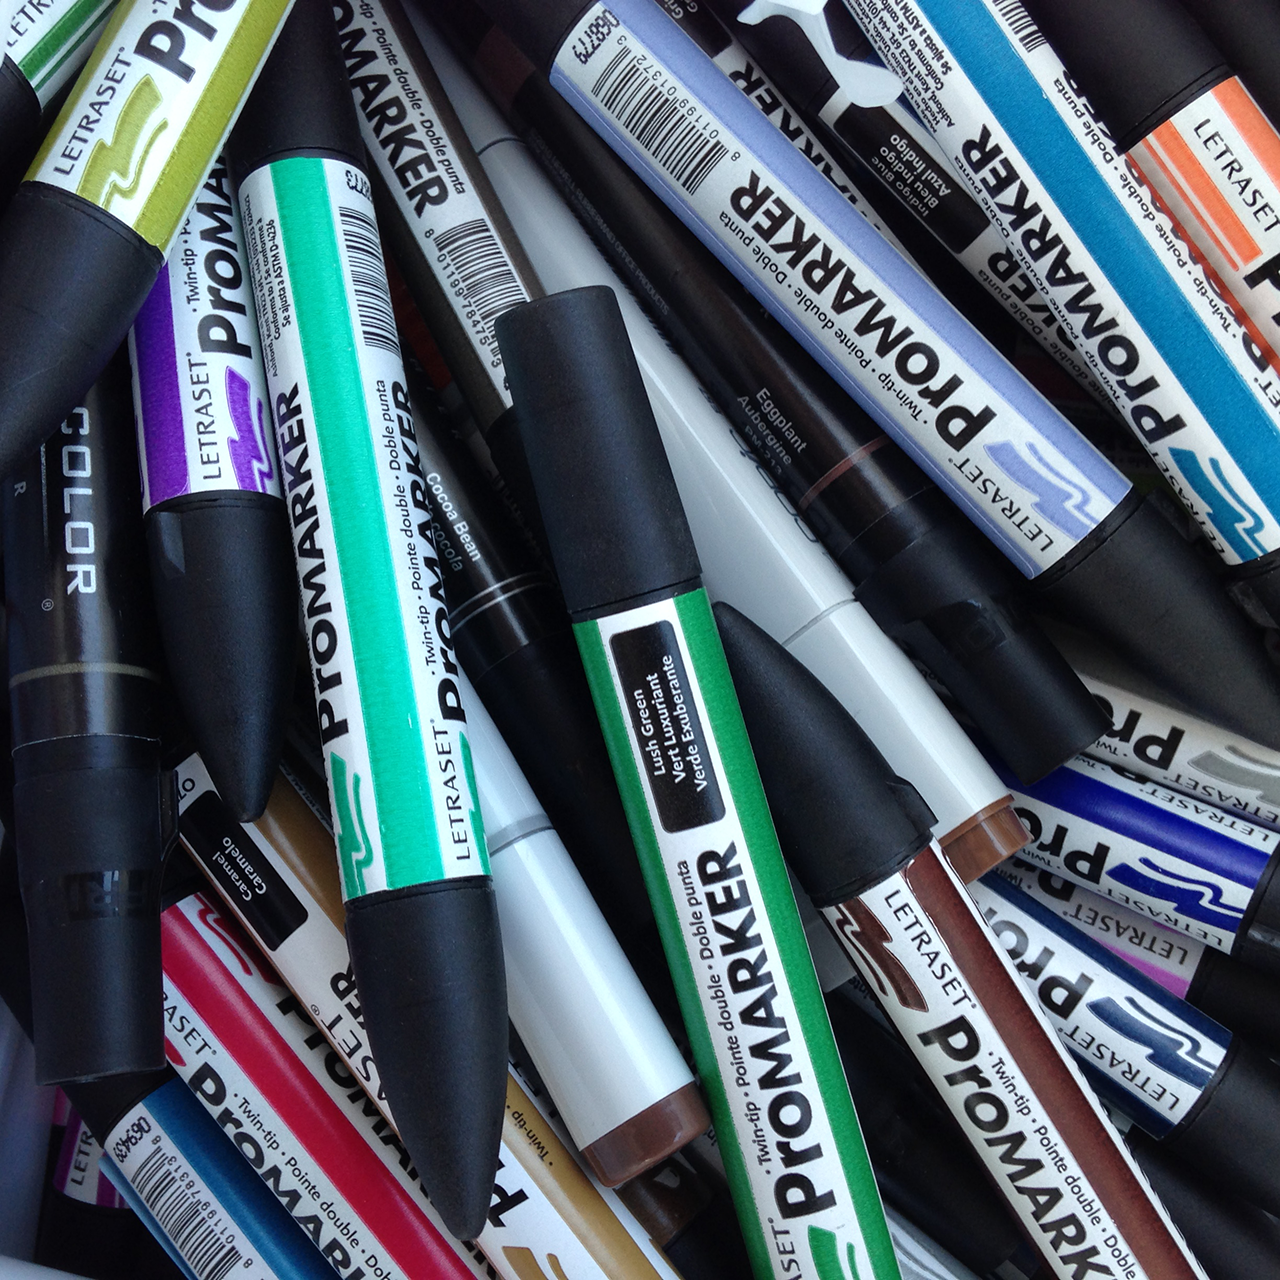 A pile of ProMarkers by Letraset in a variety of colors